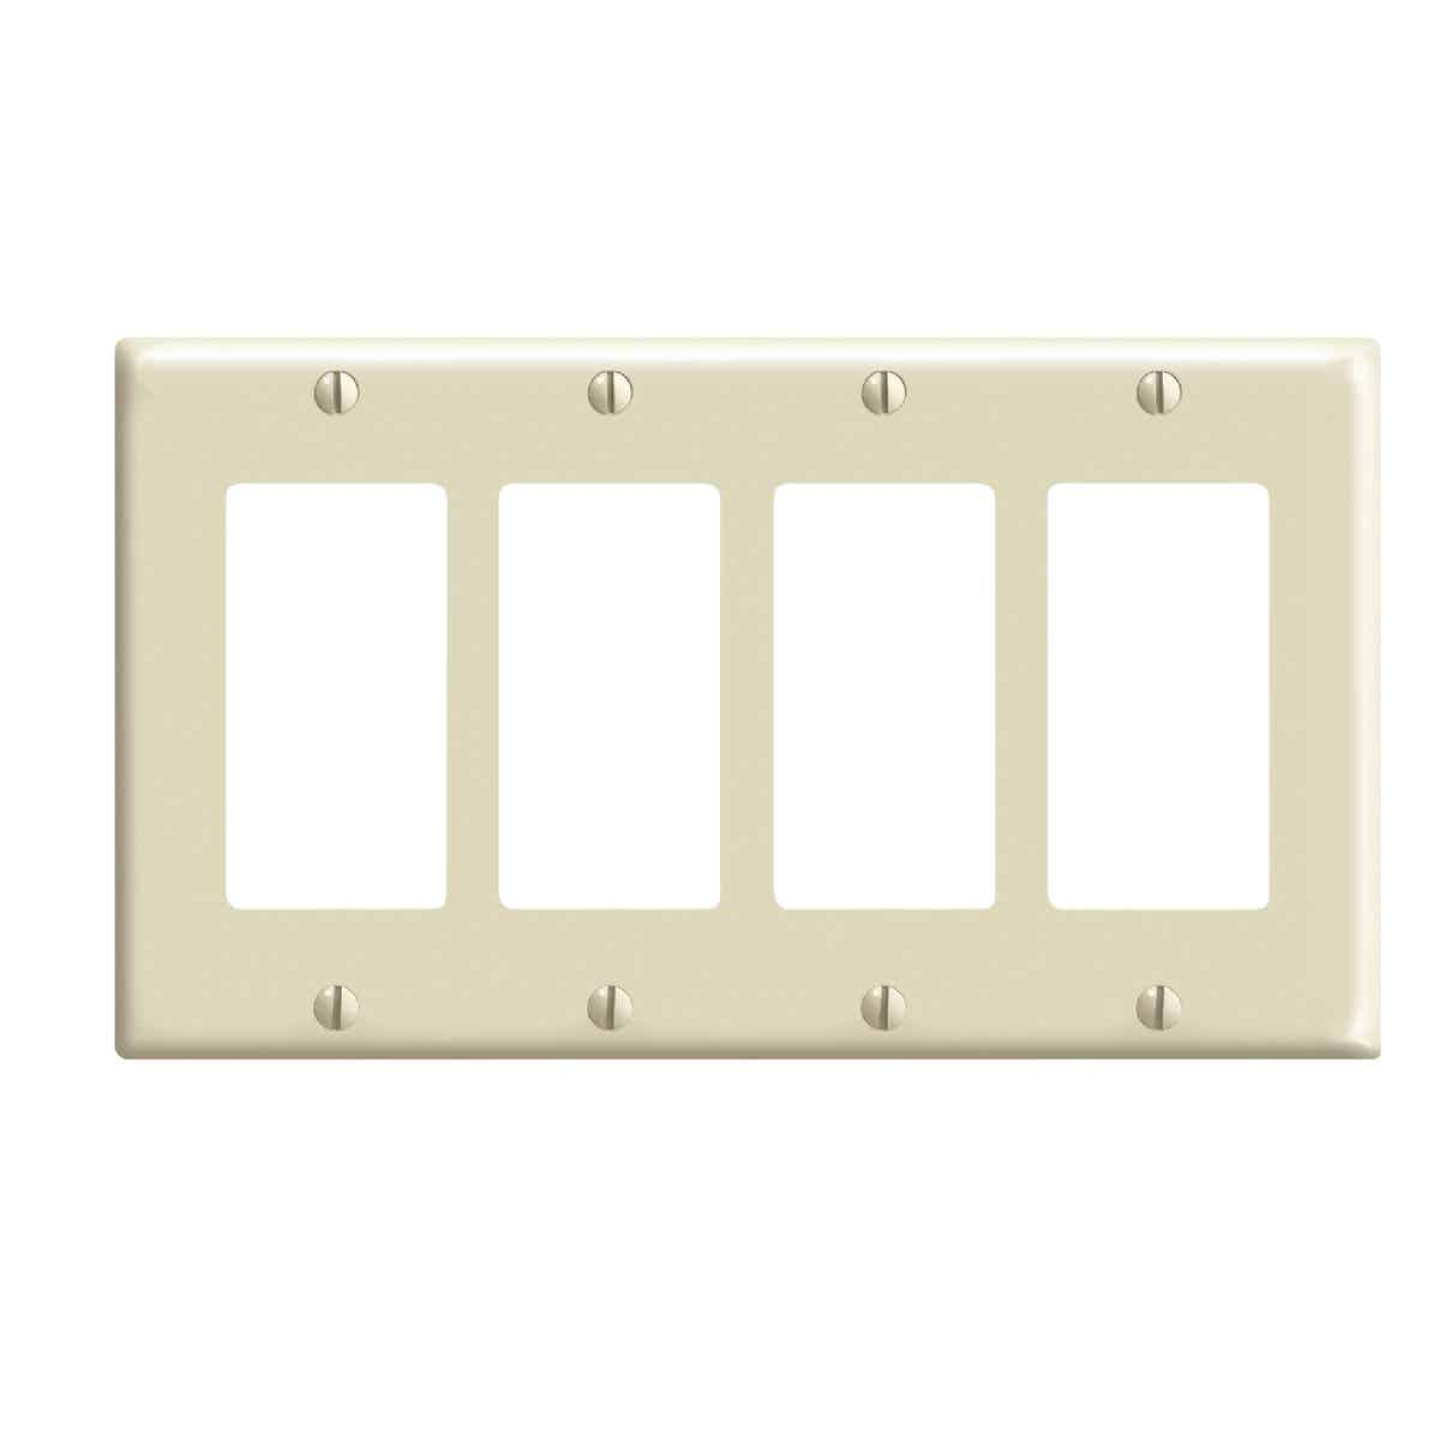 Leviton Decora 4-Gang Smooth Plastic Rocker Decorator Wall Plate, Ivory Image 1